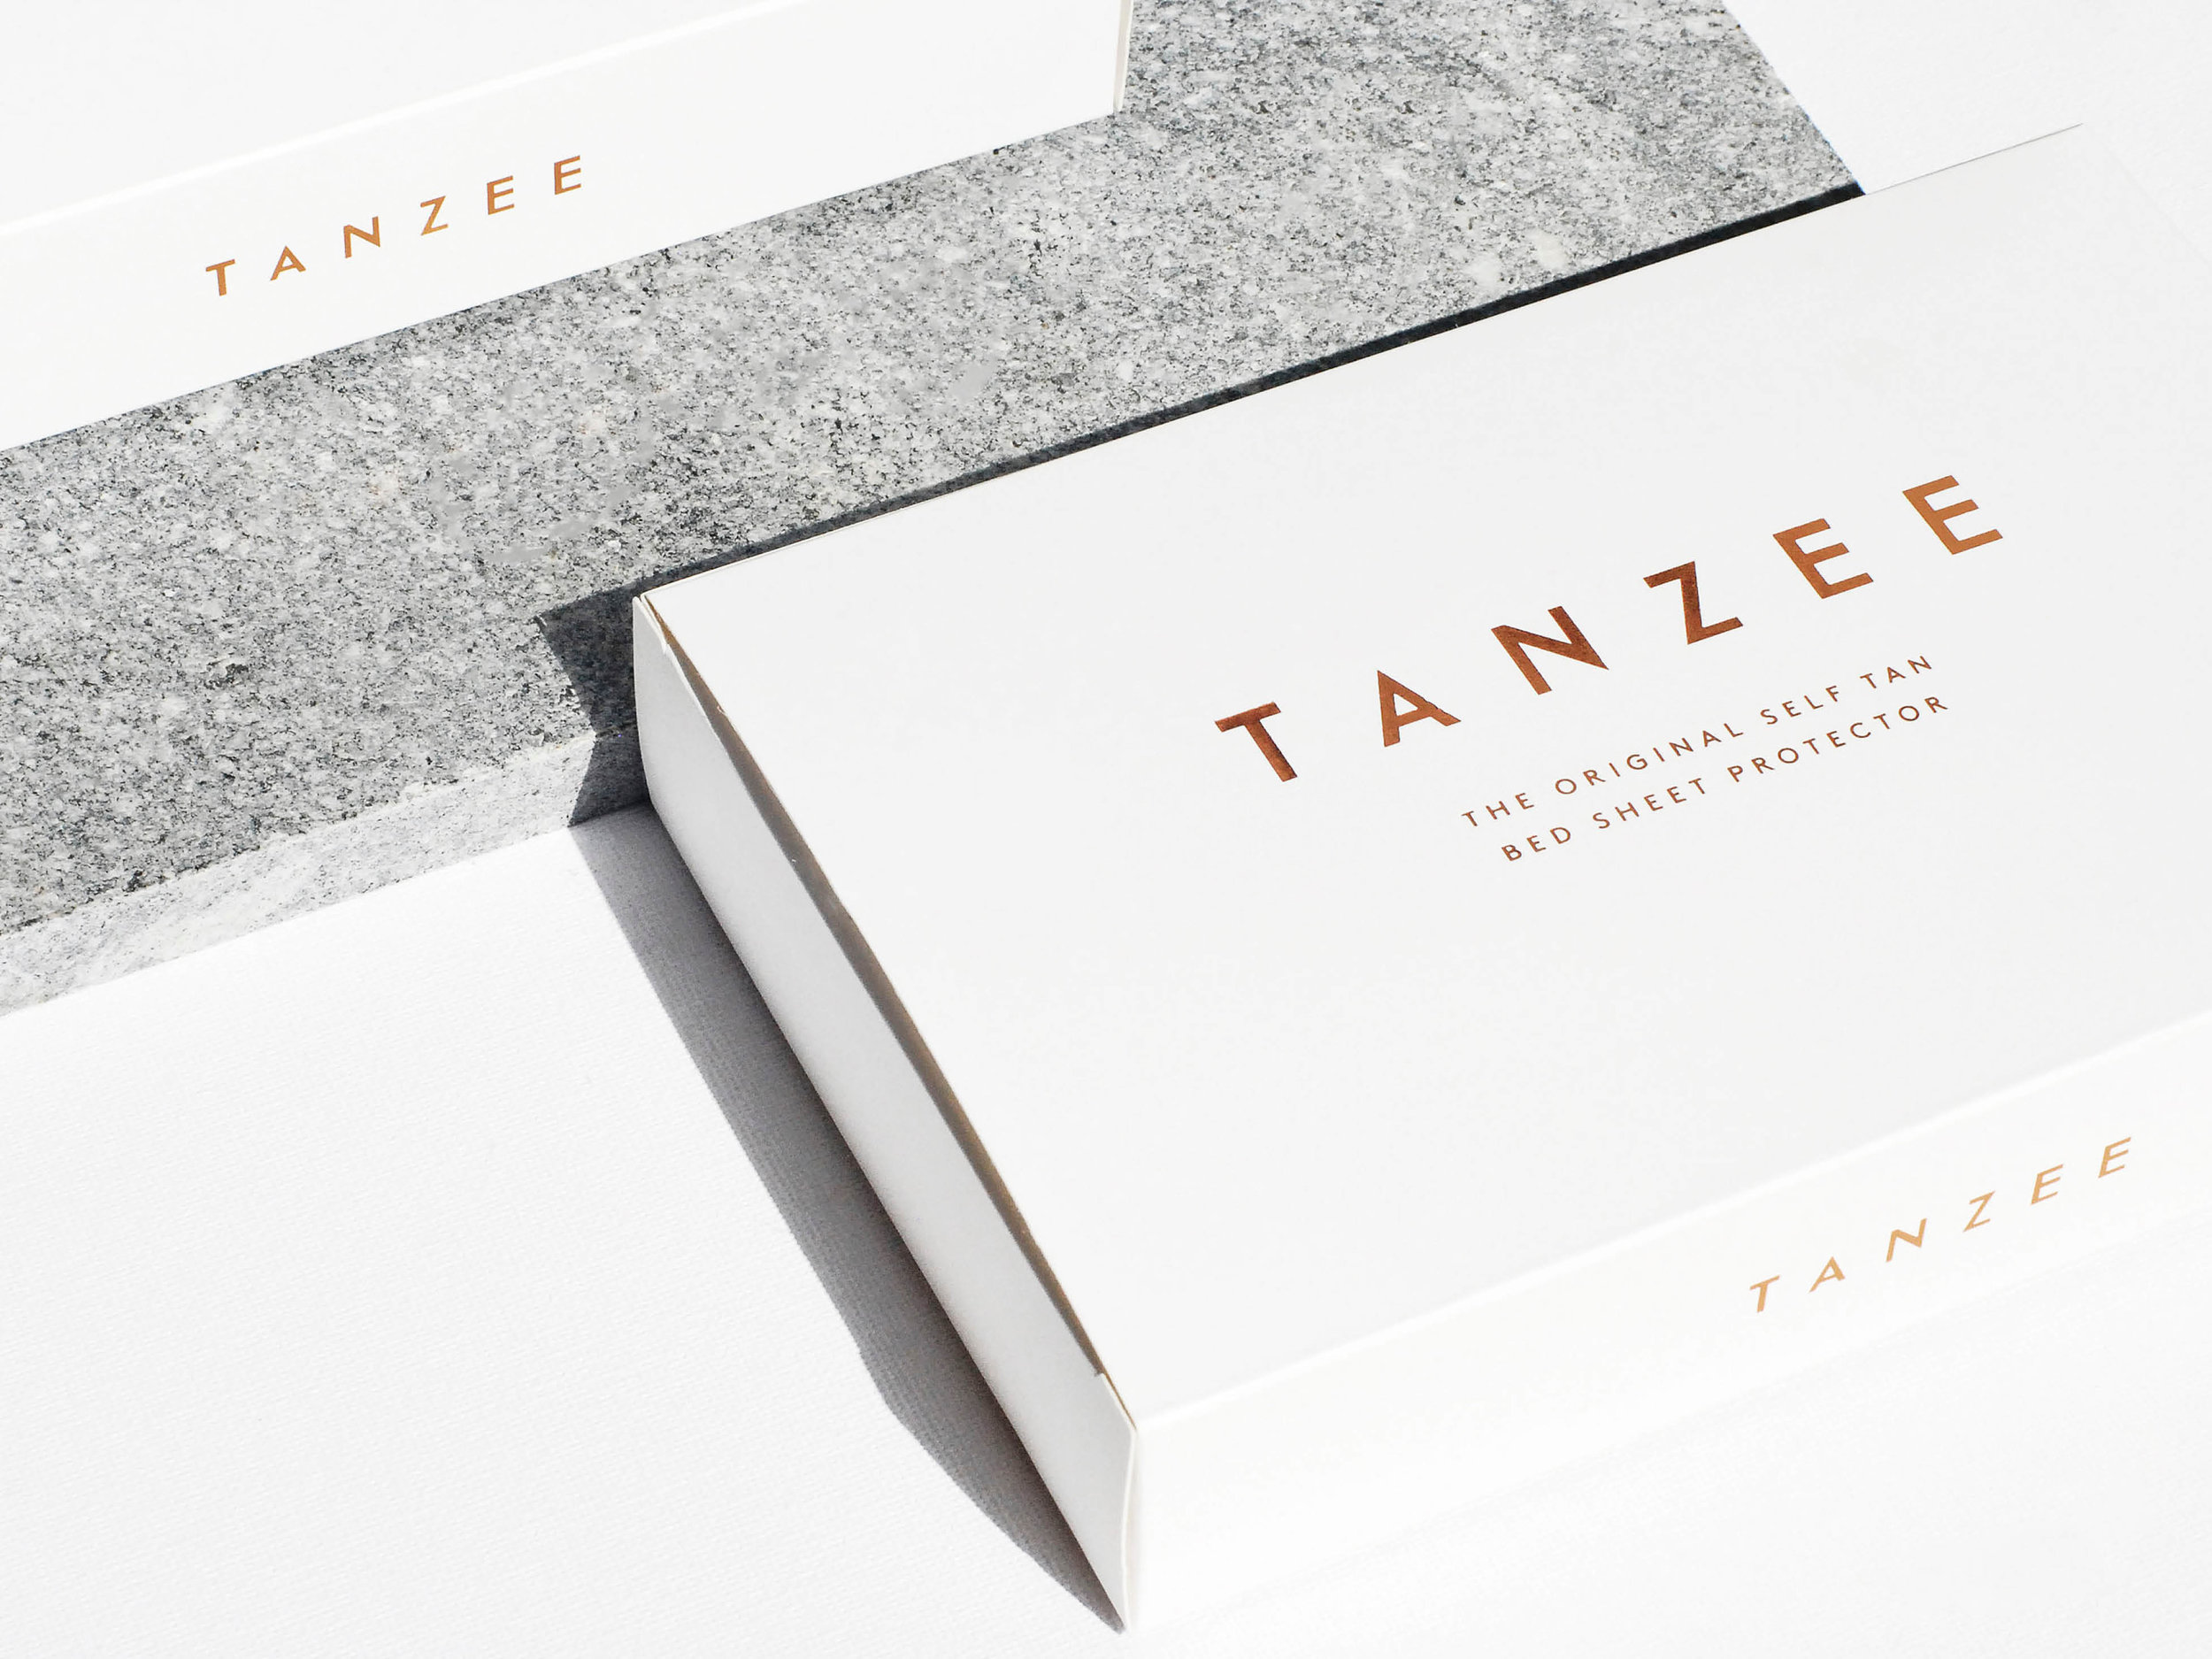 Tanzee_Body_Packaging_Branding_Design